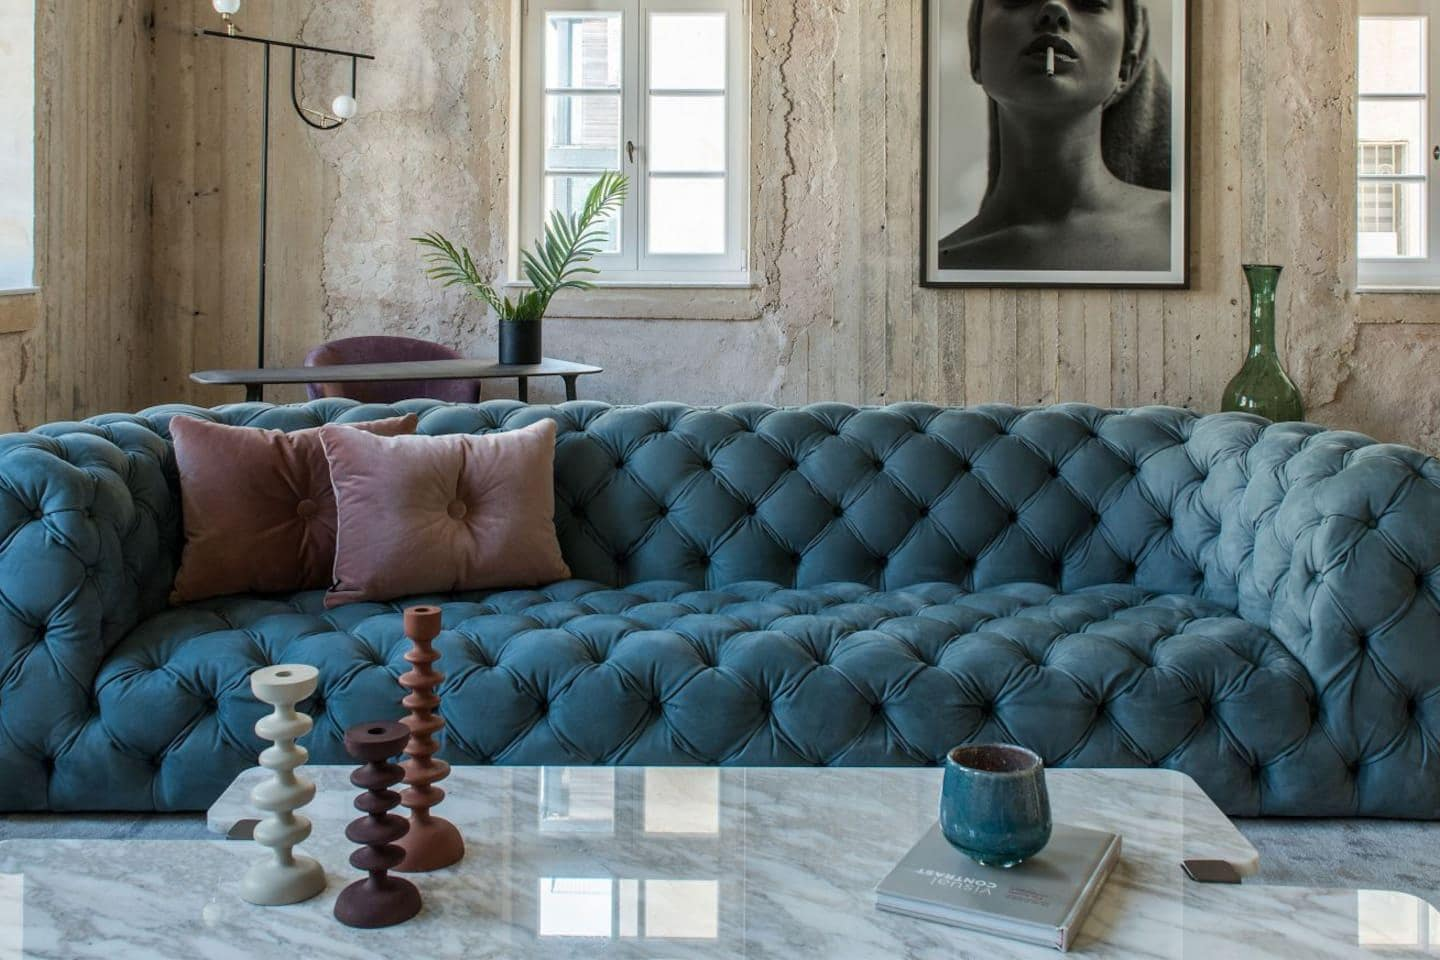 Basic Luxury Flat Inspired by Art Deco Style Interiors